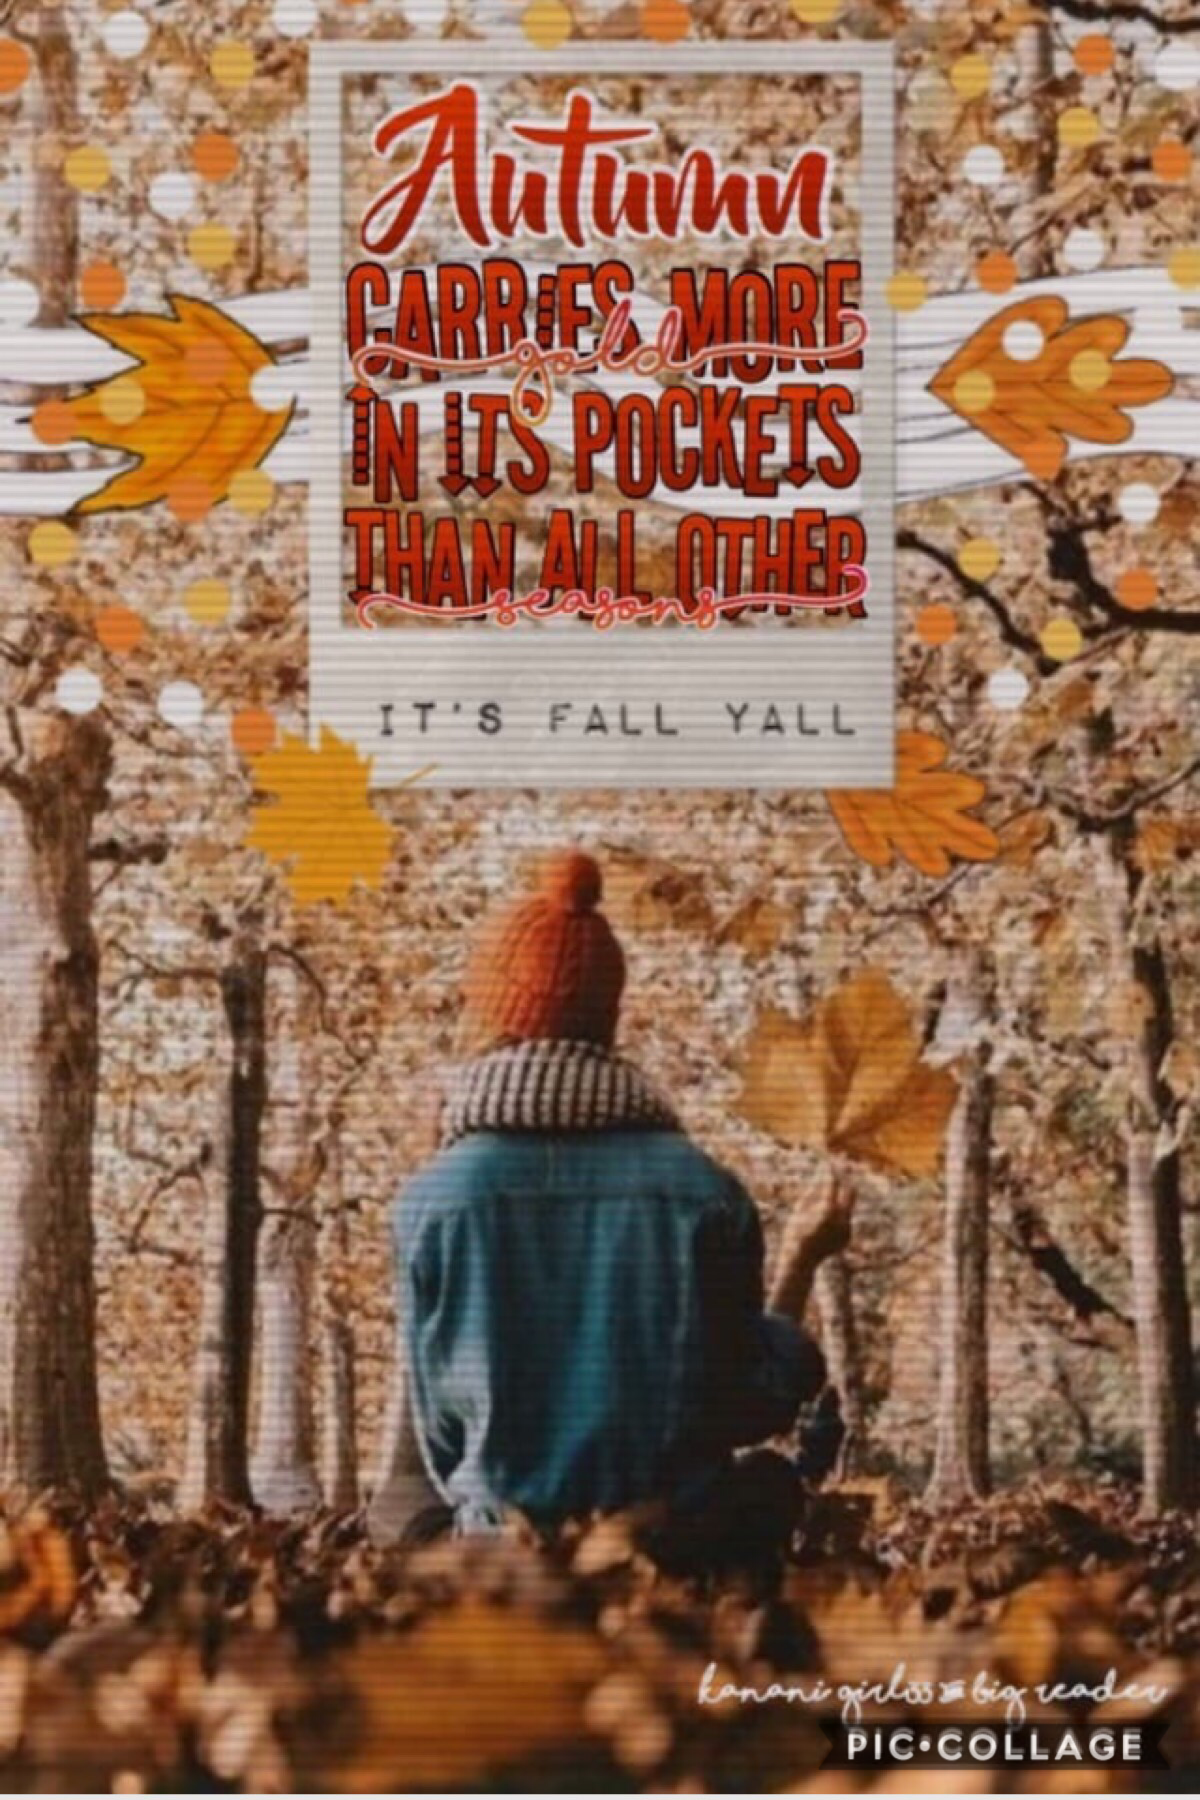 Collab with legendary kanani_girl33 🍁 She did the text and I did the background and pngs!🍂 It's fall y'all! Starting off the season with this first fall post! Hope y'all have a wonderful day!😊✨💖